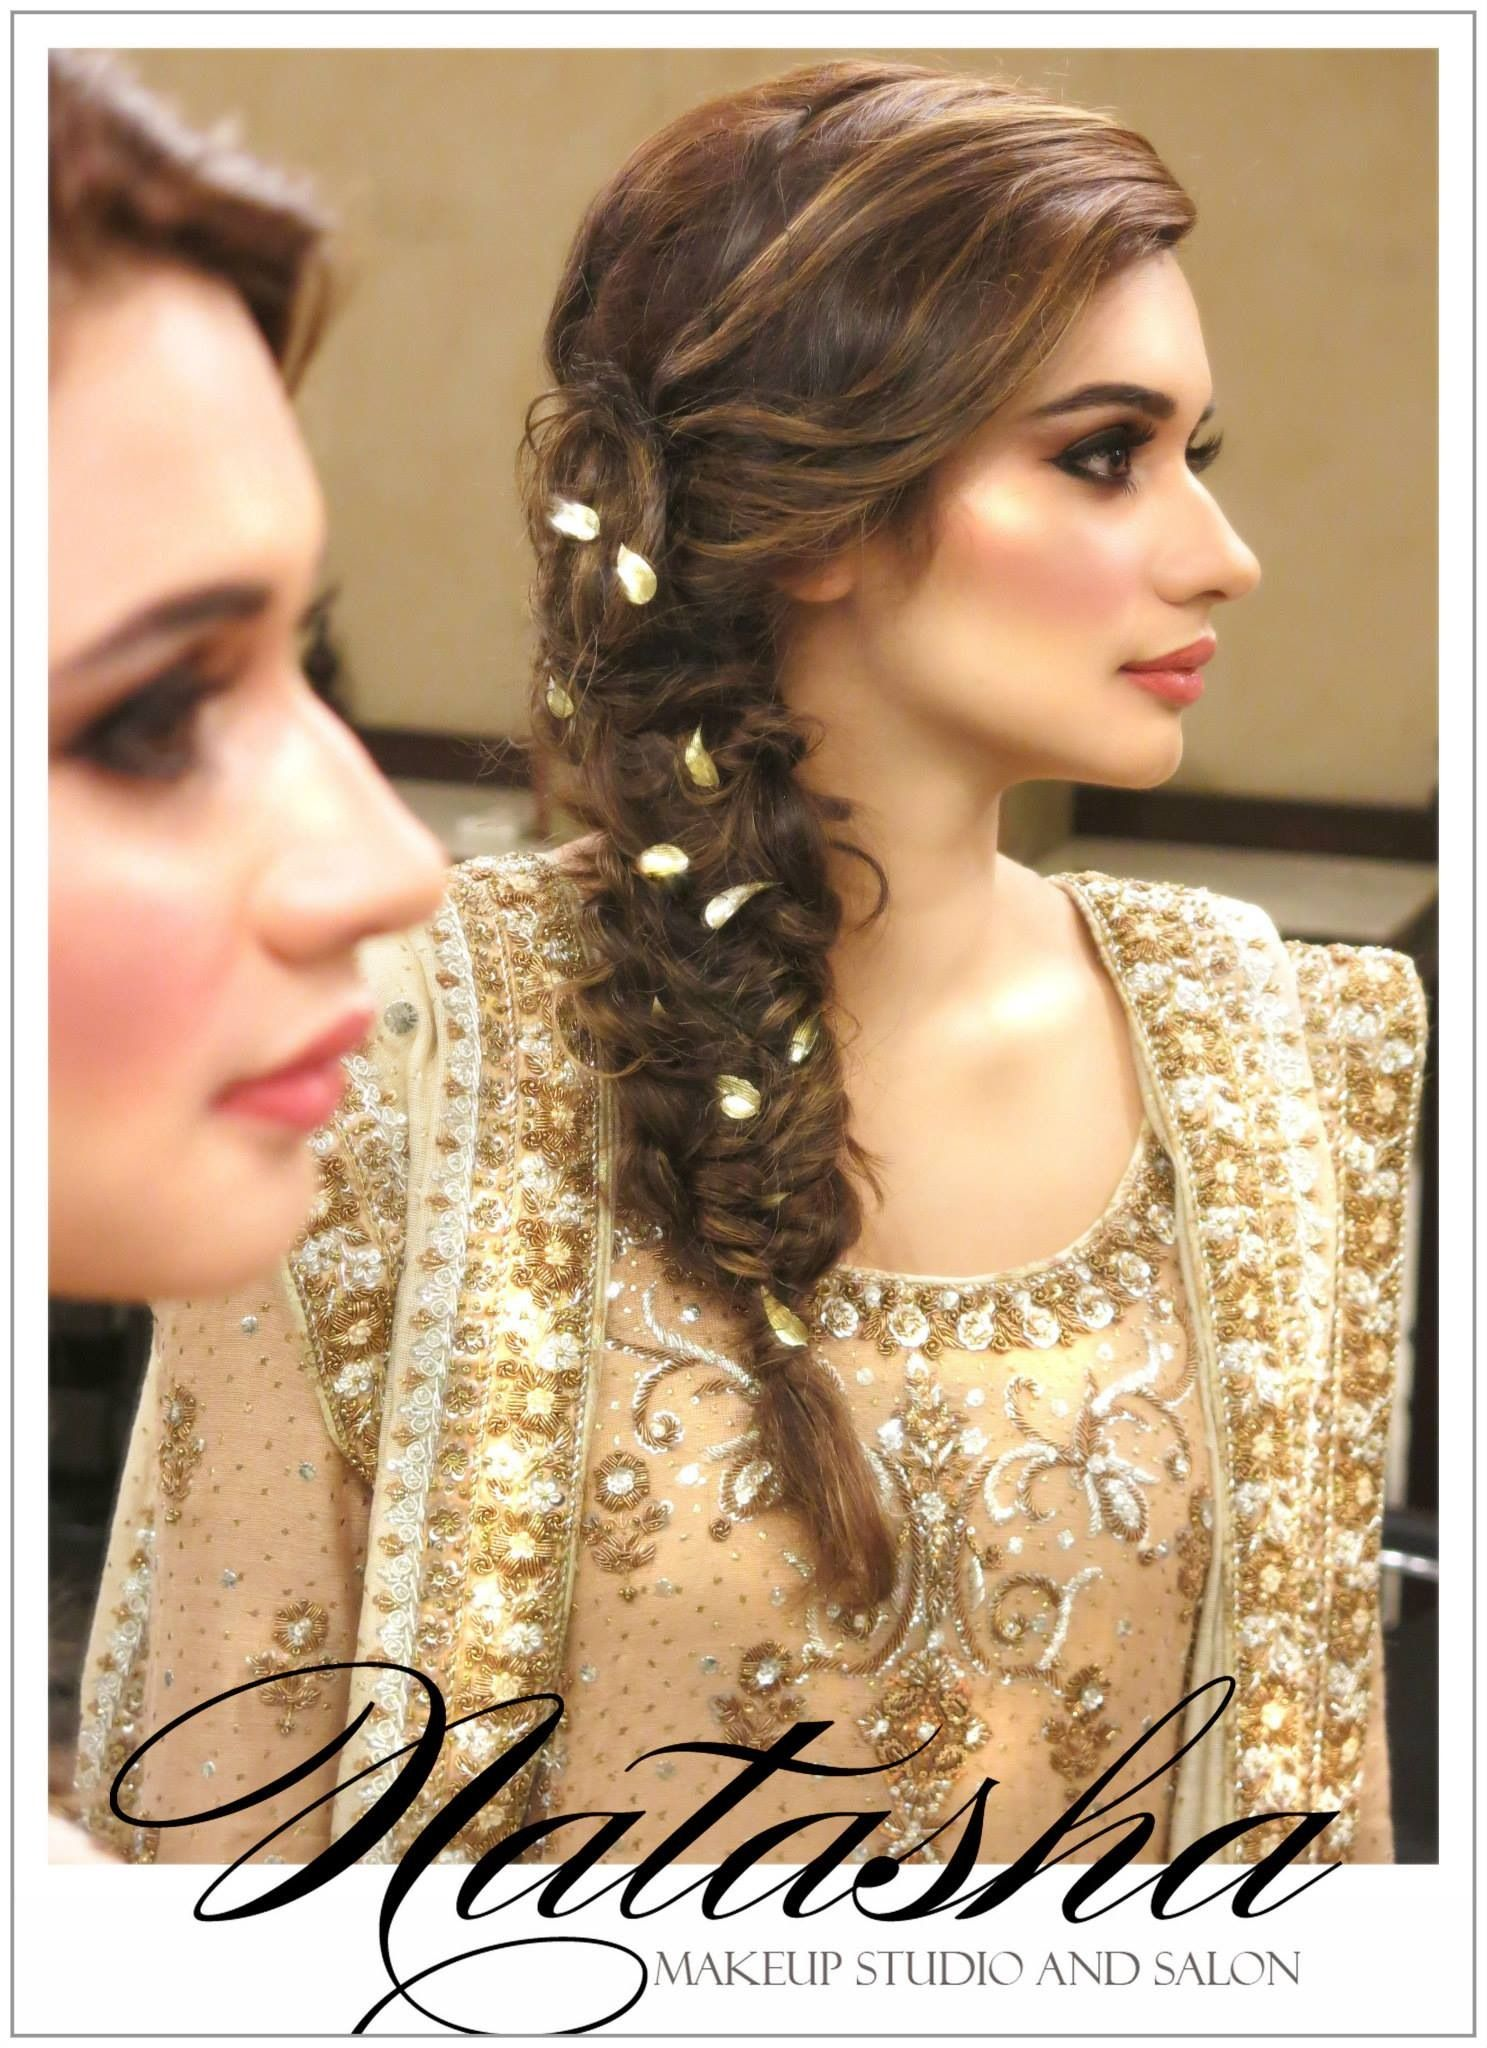 10 must have hair accessories for every 2014 bride | arabic